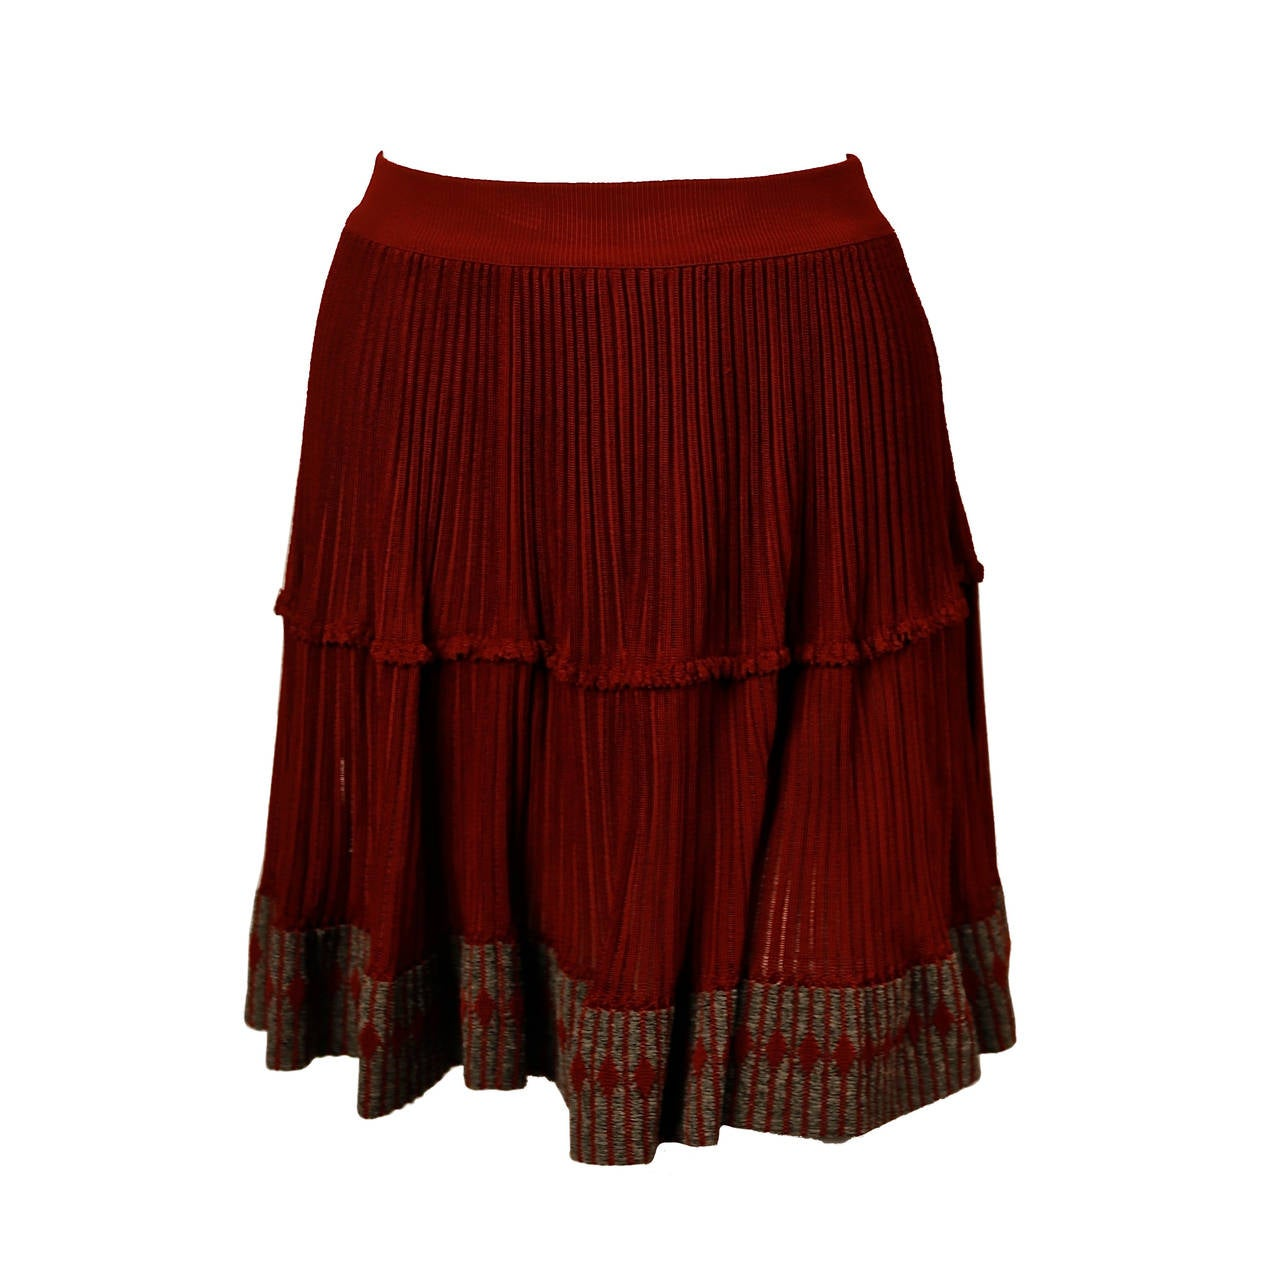 1990's AZZEDINE ALAIA cinnamon semi sheer skirt with contrasting trim For Sale